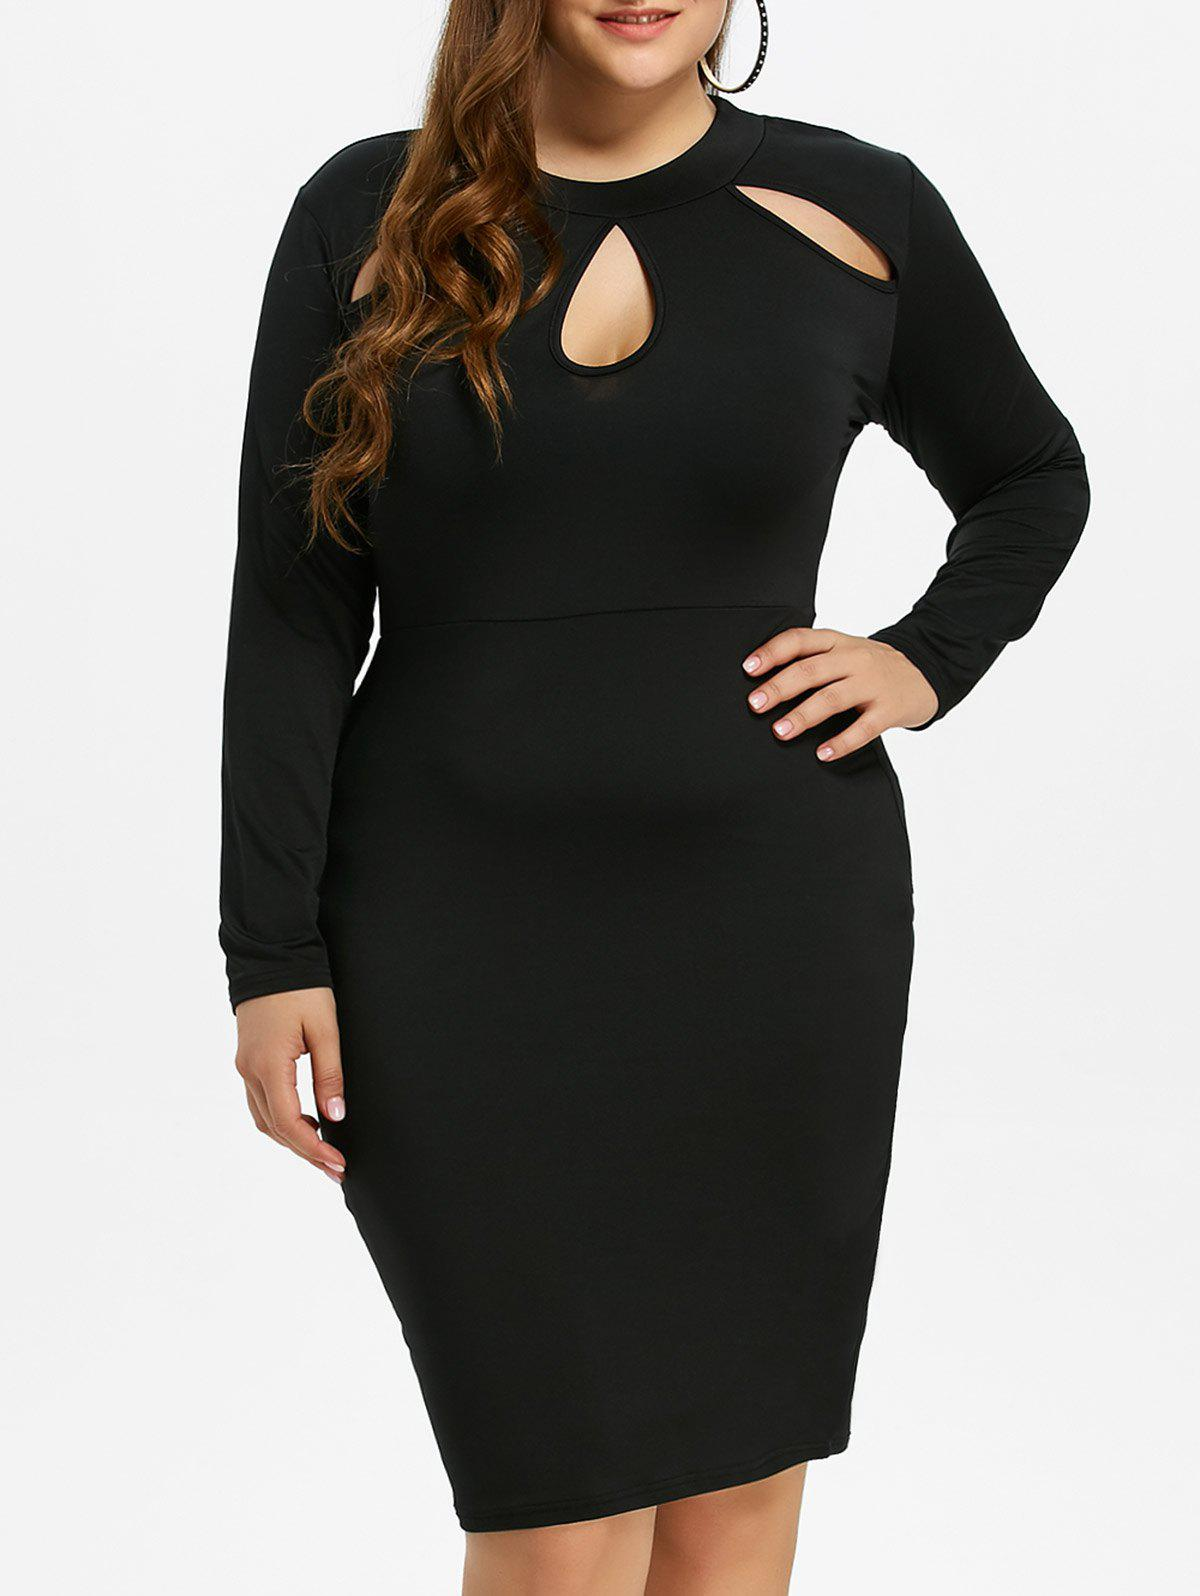 Cut Out Plus Size Bodycon Tight DressWOMEN<br><br>Size: 3XL; Color: BLACK; Style: Brief; Material: Polyester; Silhouette: Sheath; Dresses Length: Knee-Length; Neckline: Keyhole Neck; Sleeve Length: Long Sleeves; Pattern Type: Solid; With Belt: No; Season: Fall,Spring,Winter; Weight: 0.370kg; Package Contents: 1 x Dress;